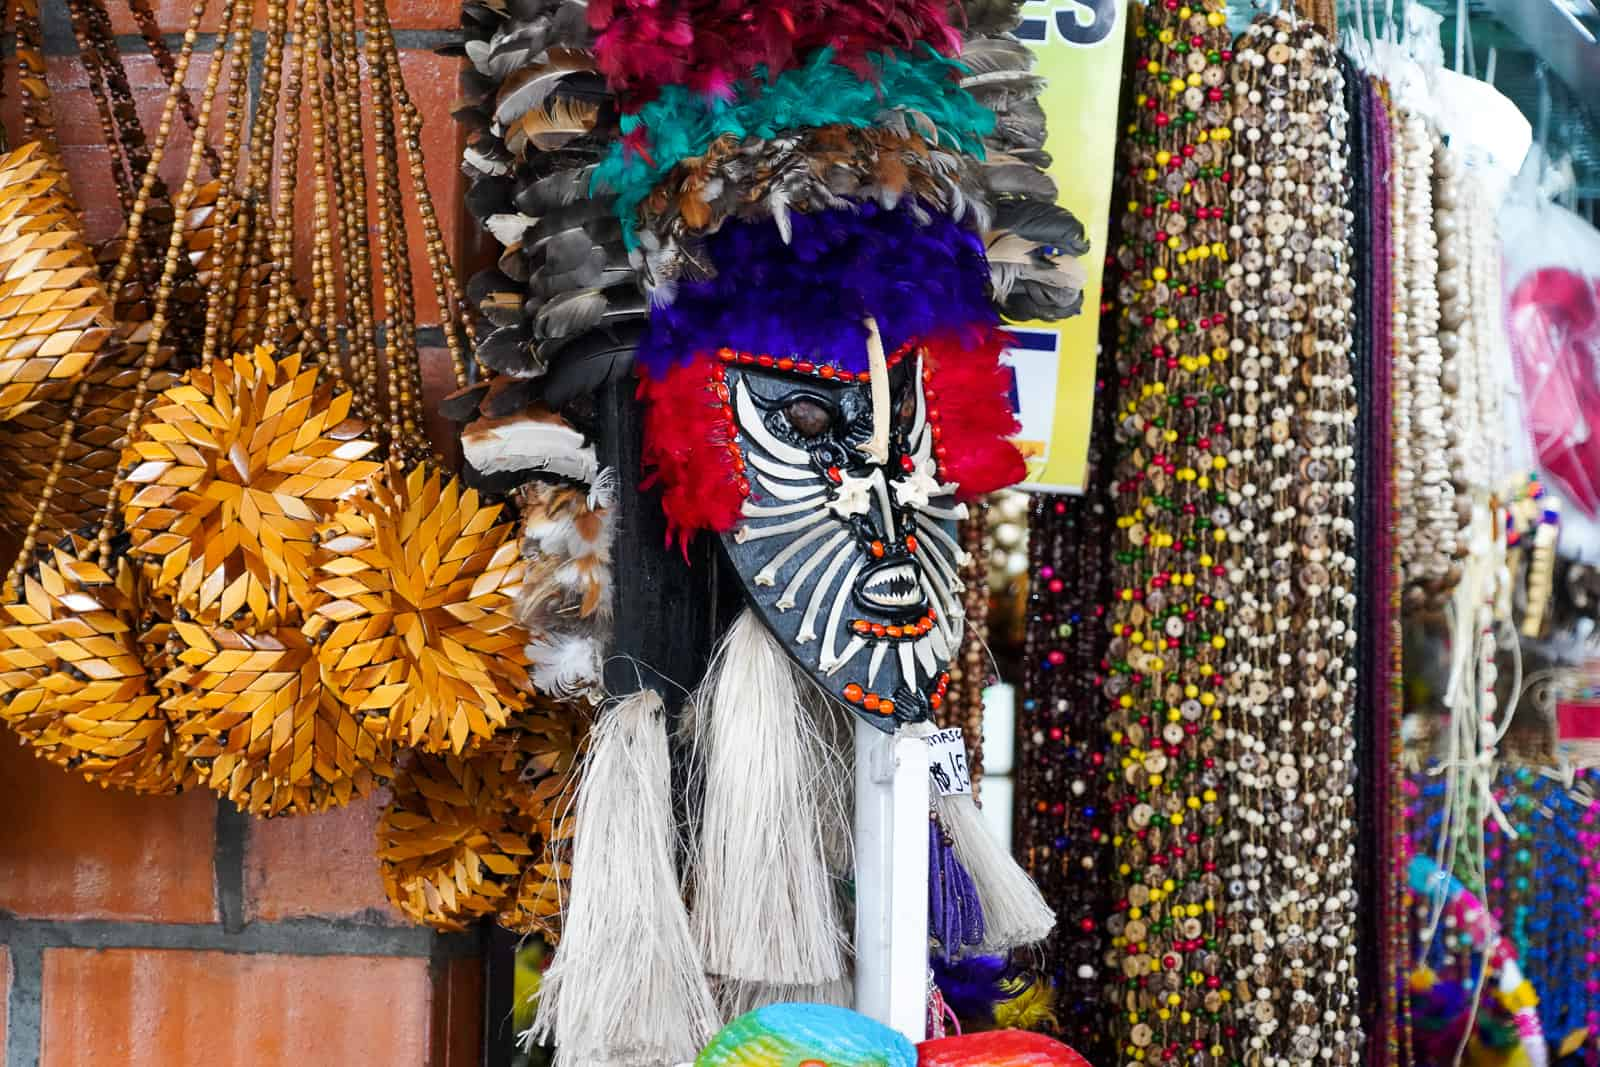 Traditional headdress in the market